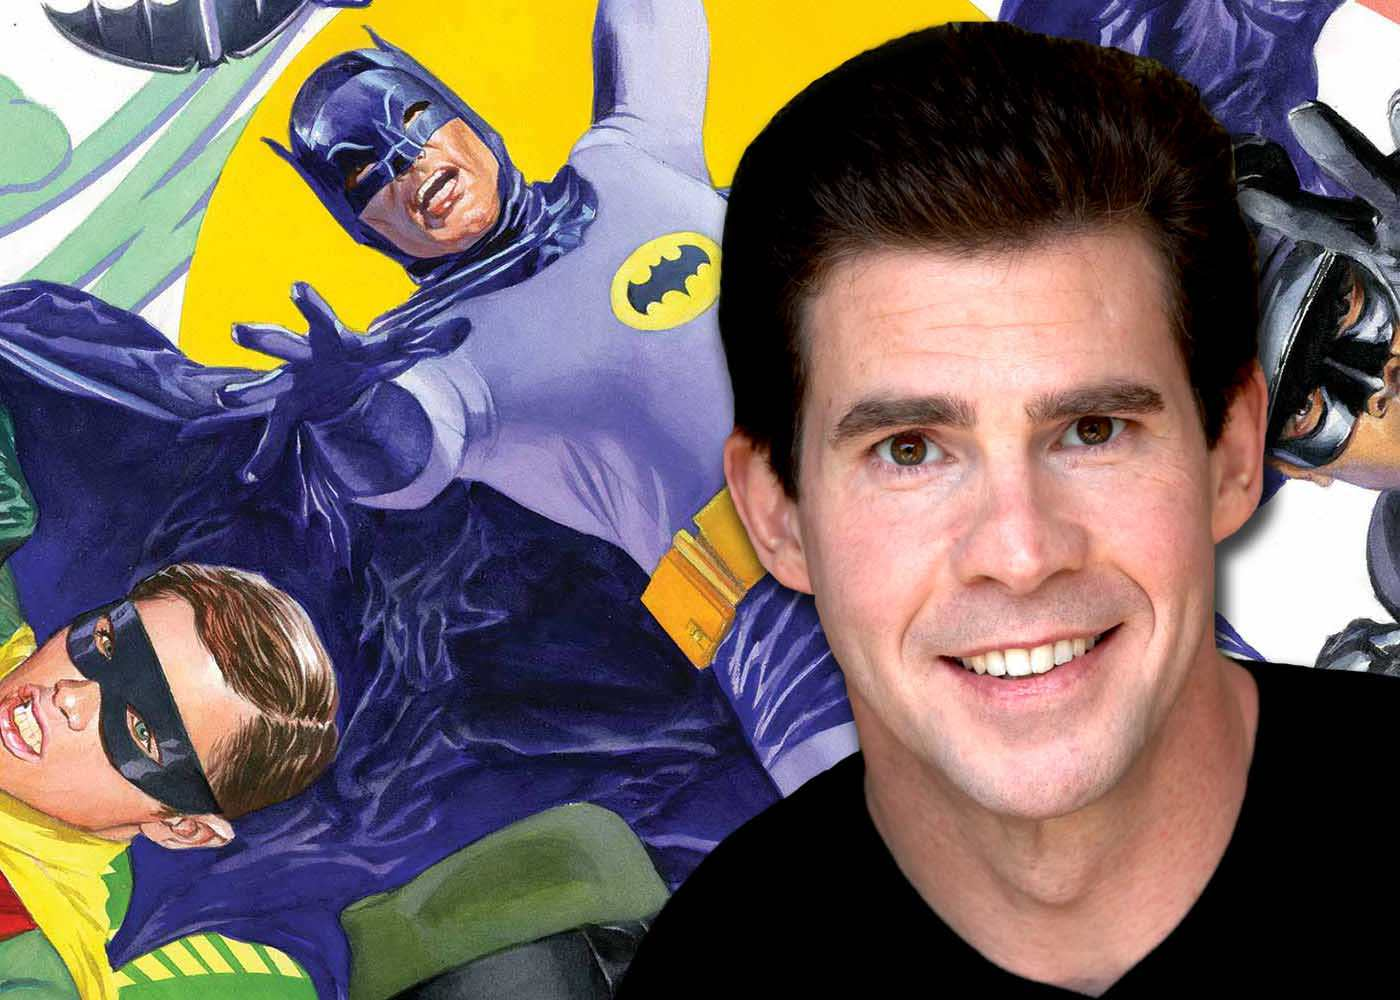 Ralph Garman Geeks Out: The Orville, Kevin Smith, and All Things Batman